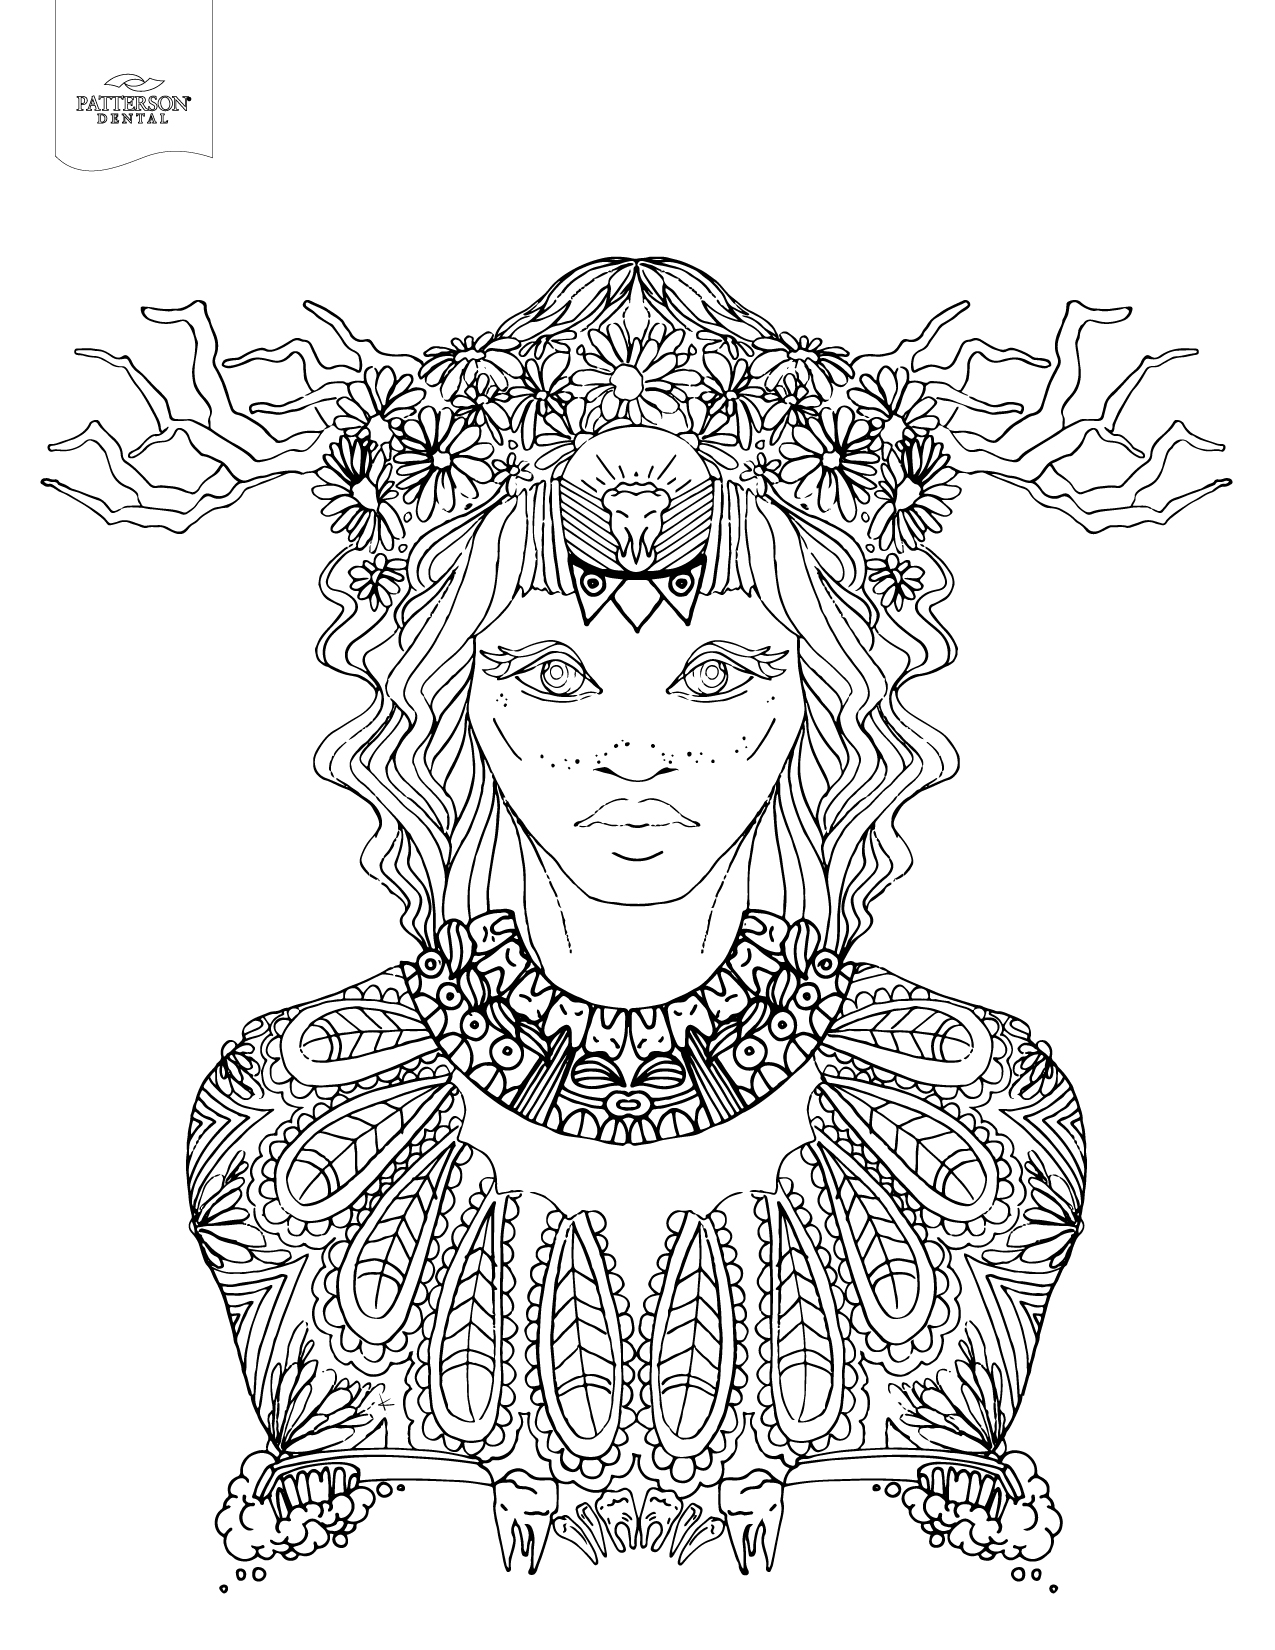 coloring adults 10 toothy adult coloring pages printable off the cusp coloring adults 1 2